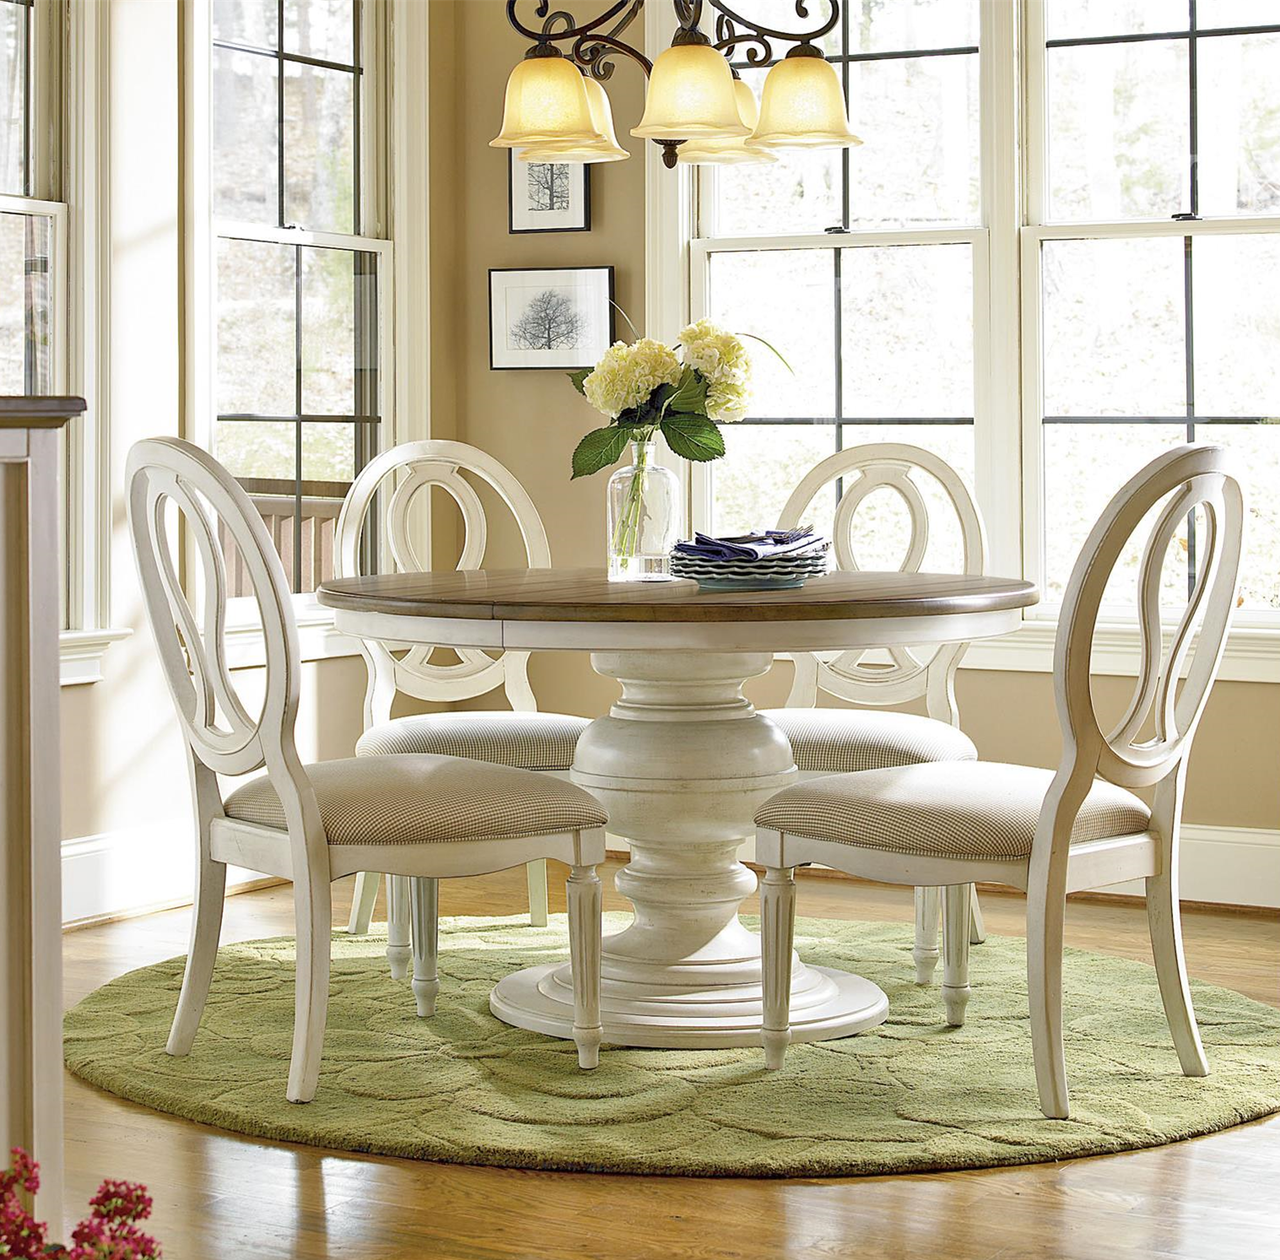 c1fe0411b20a Shop our Country-Chic 5 Piece Round White Dining Table Set for sale at Zin  Home. This white round pedestal kitchen table set include an extending round  ...